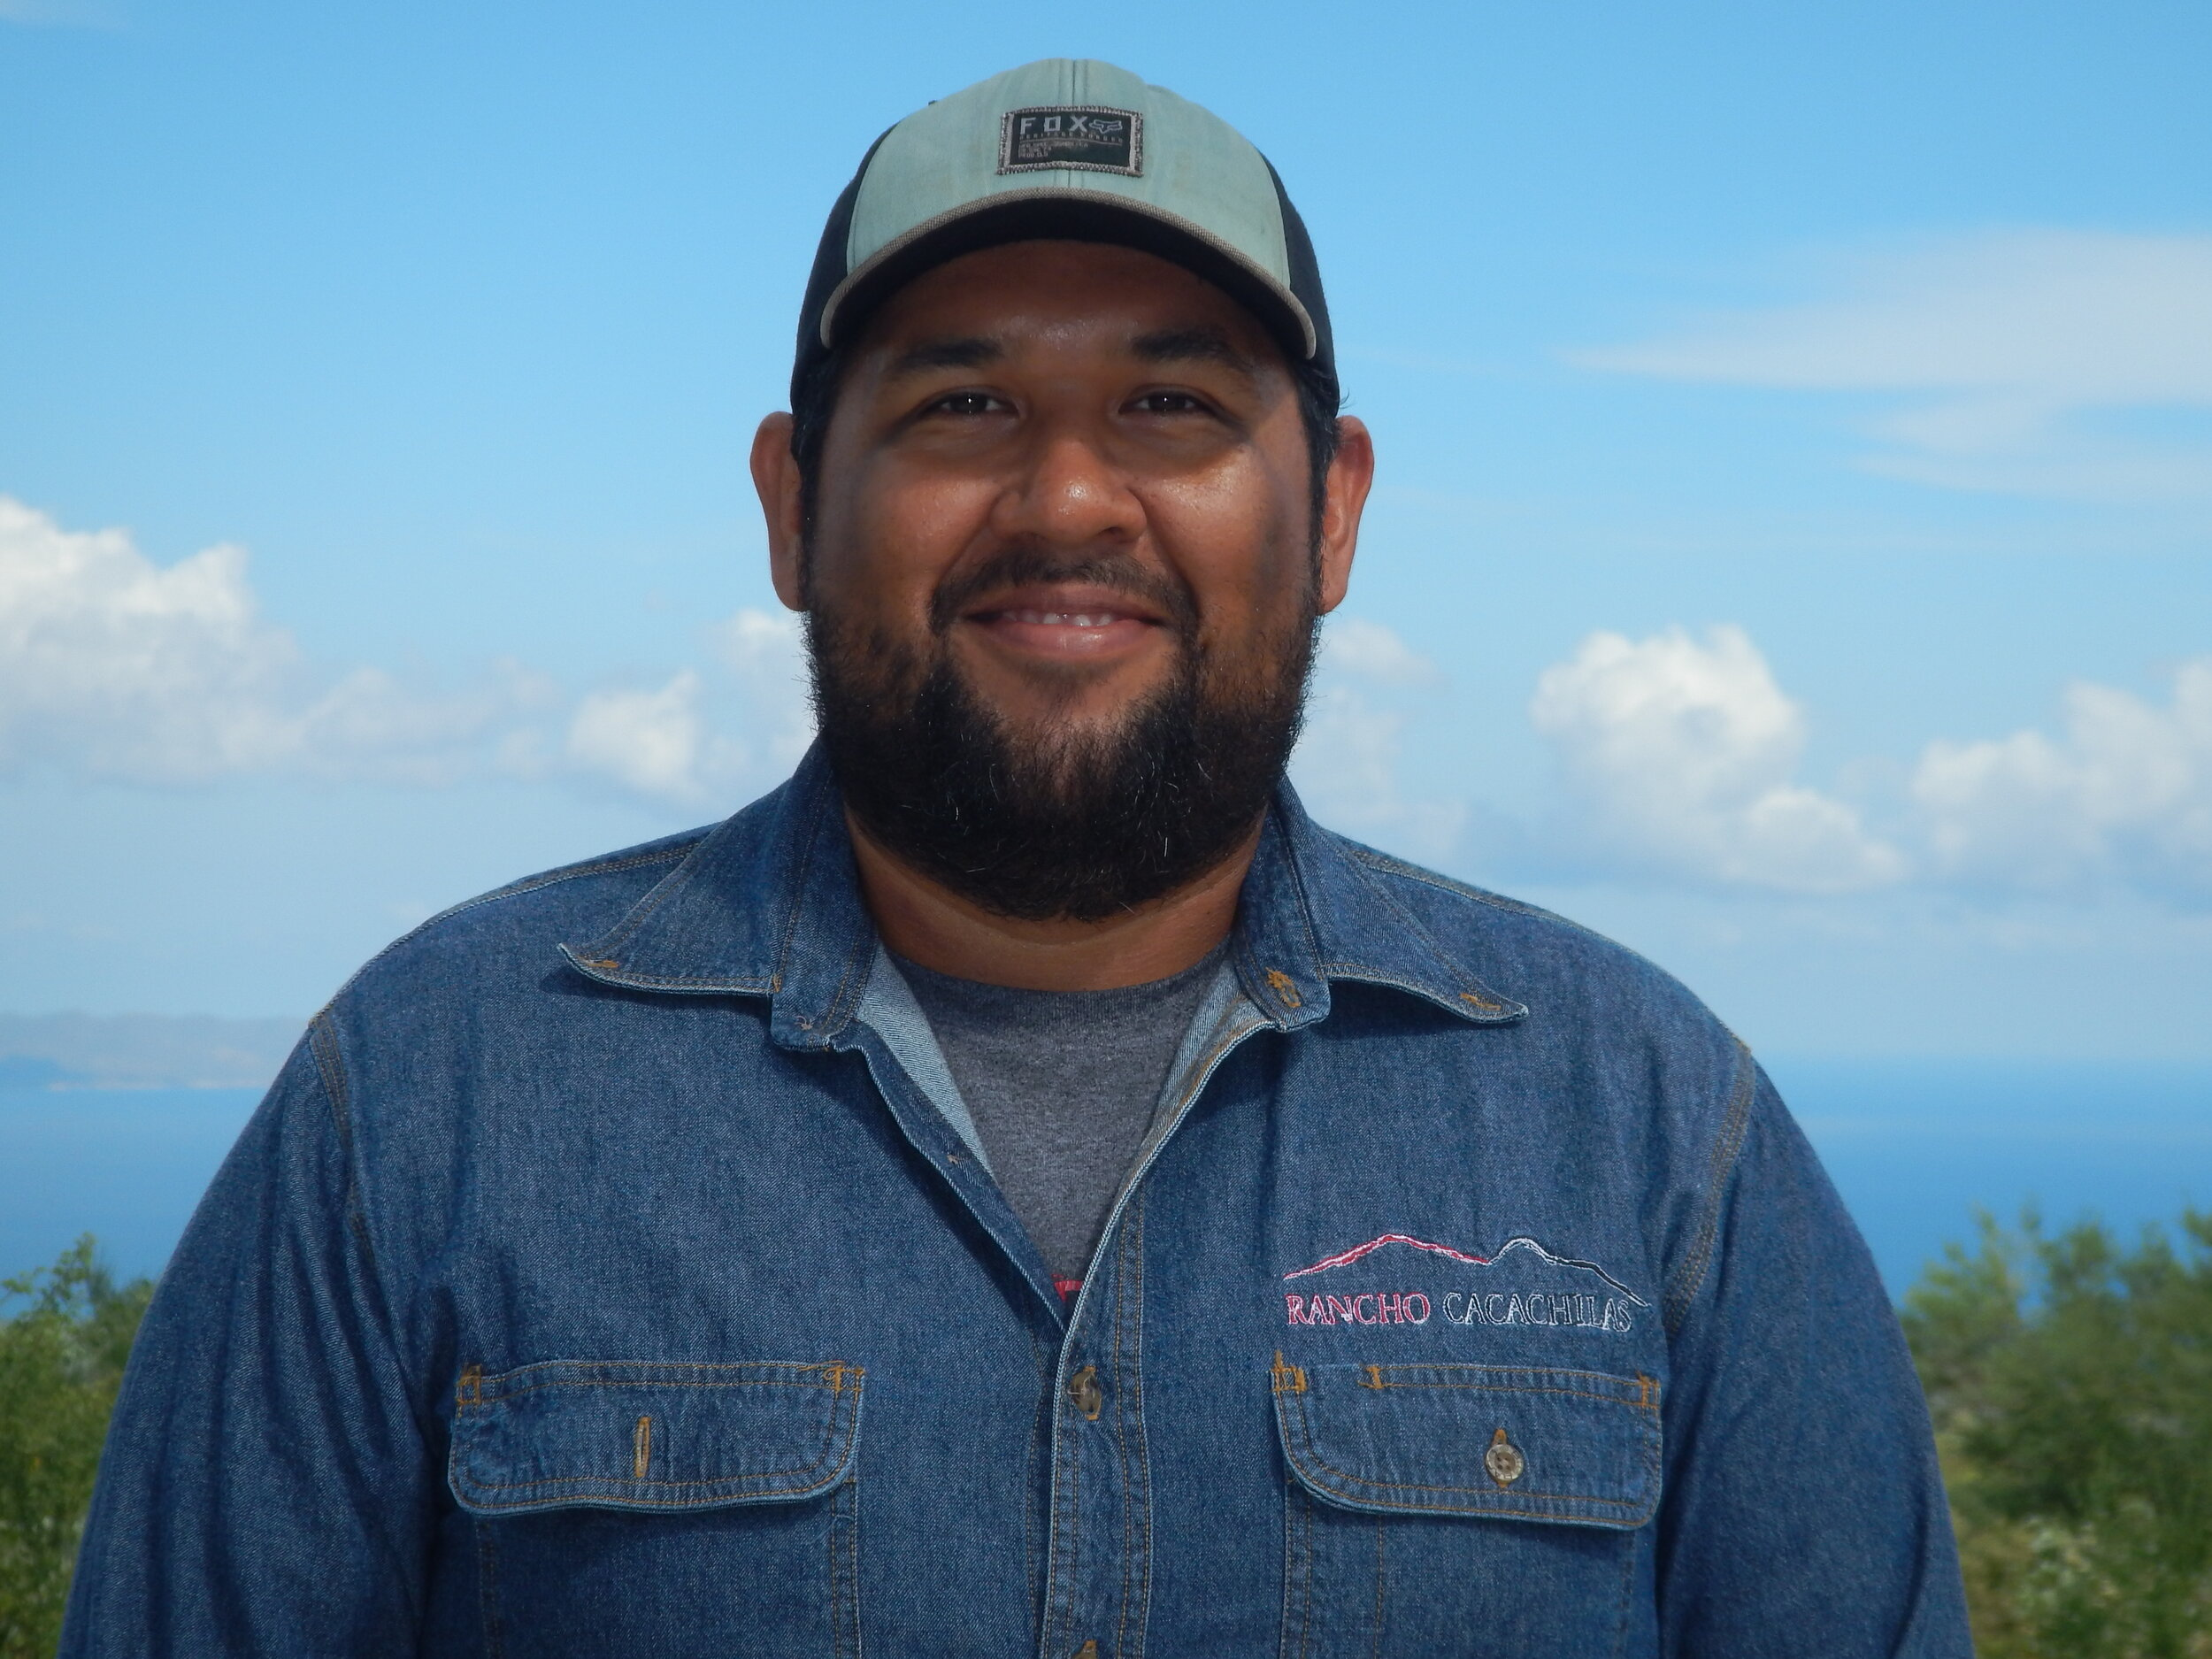 Oscar Aaron Cañedo - Crew Supervisor   Oscar is an enthusiastic trail designer on the trail development team. He also enjoys riding the trails that he and his team construct. With a degree in ecotourism, he has also became one of the lead tour guides on the ranch!